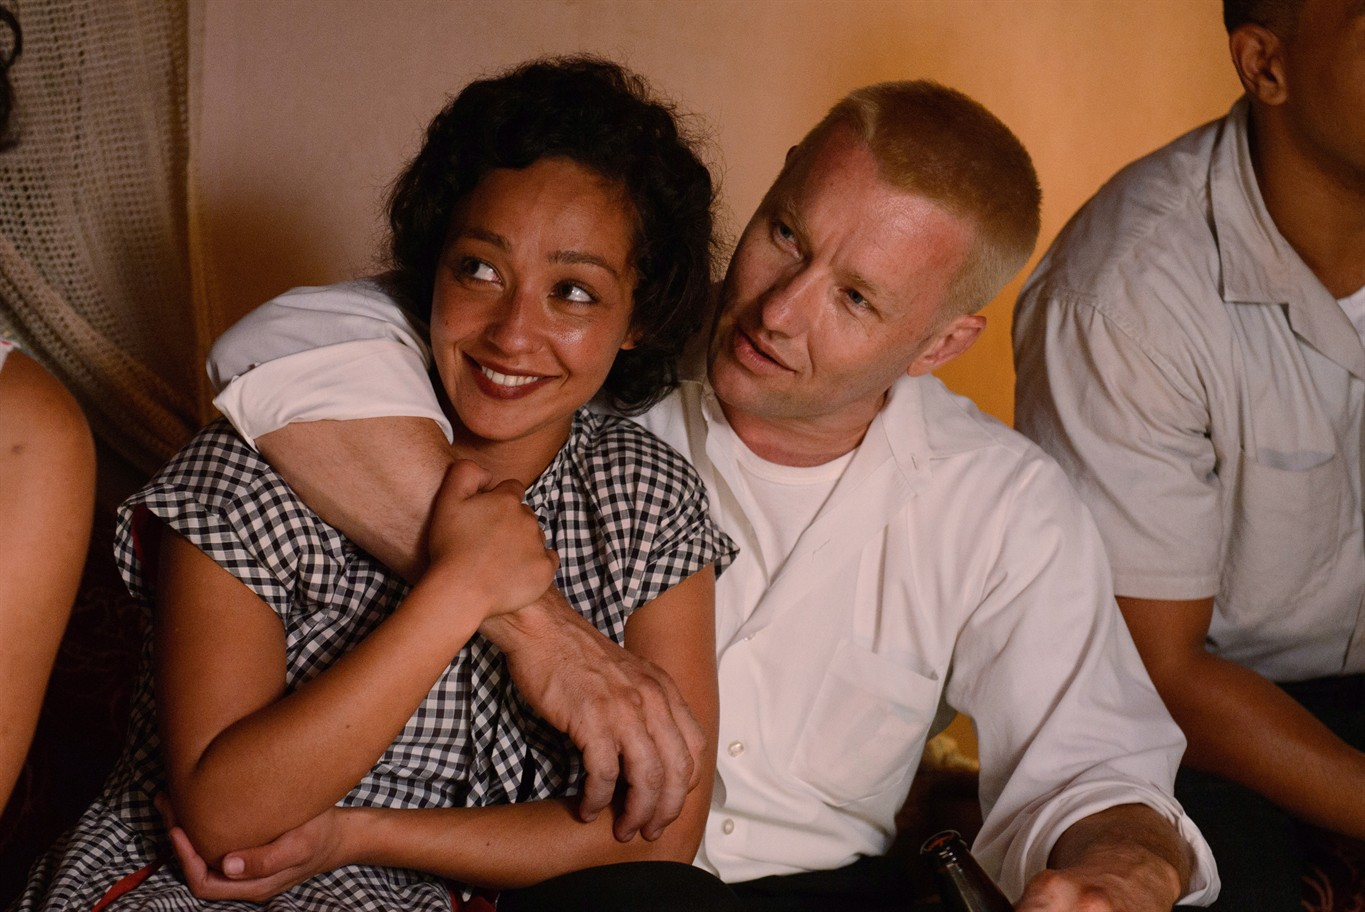 Canadian research on interracial couples phrase, simply